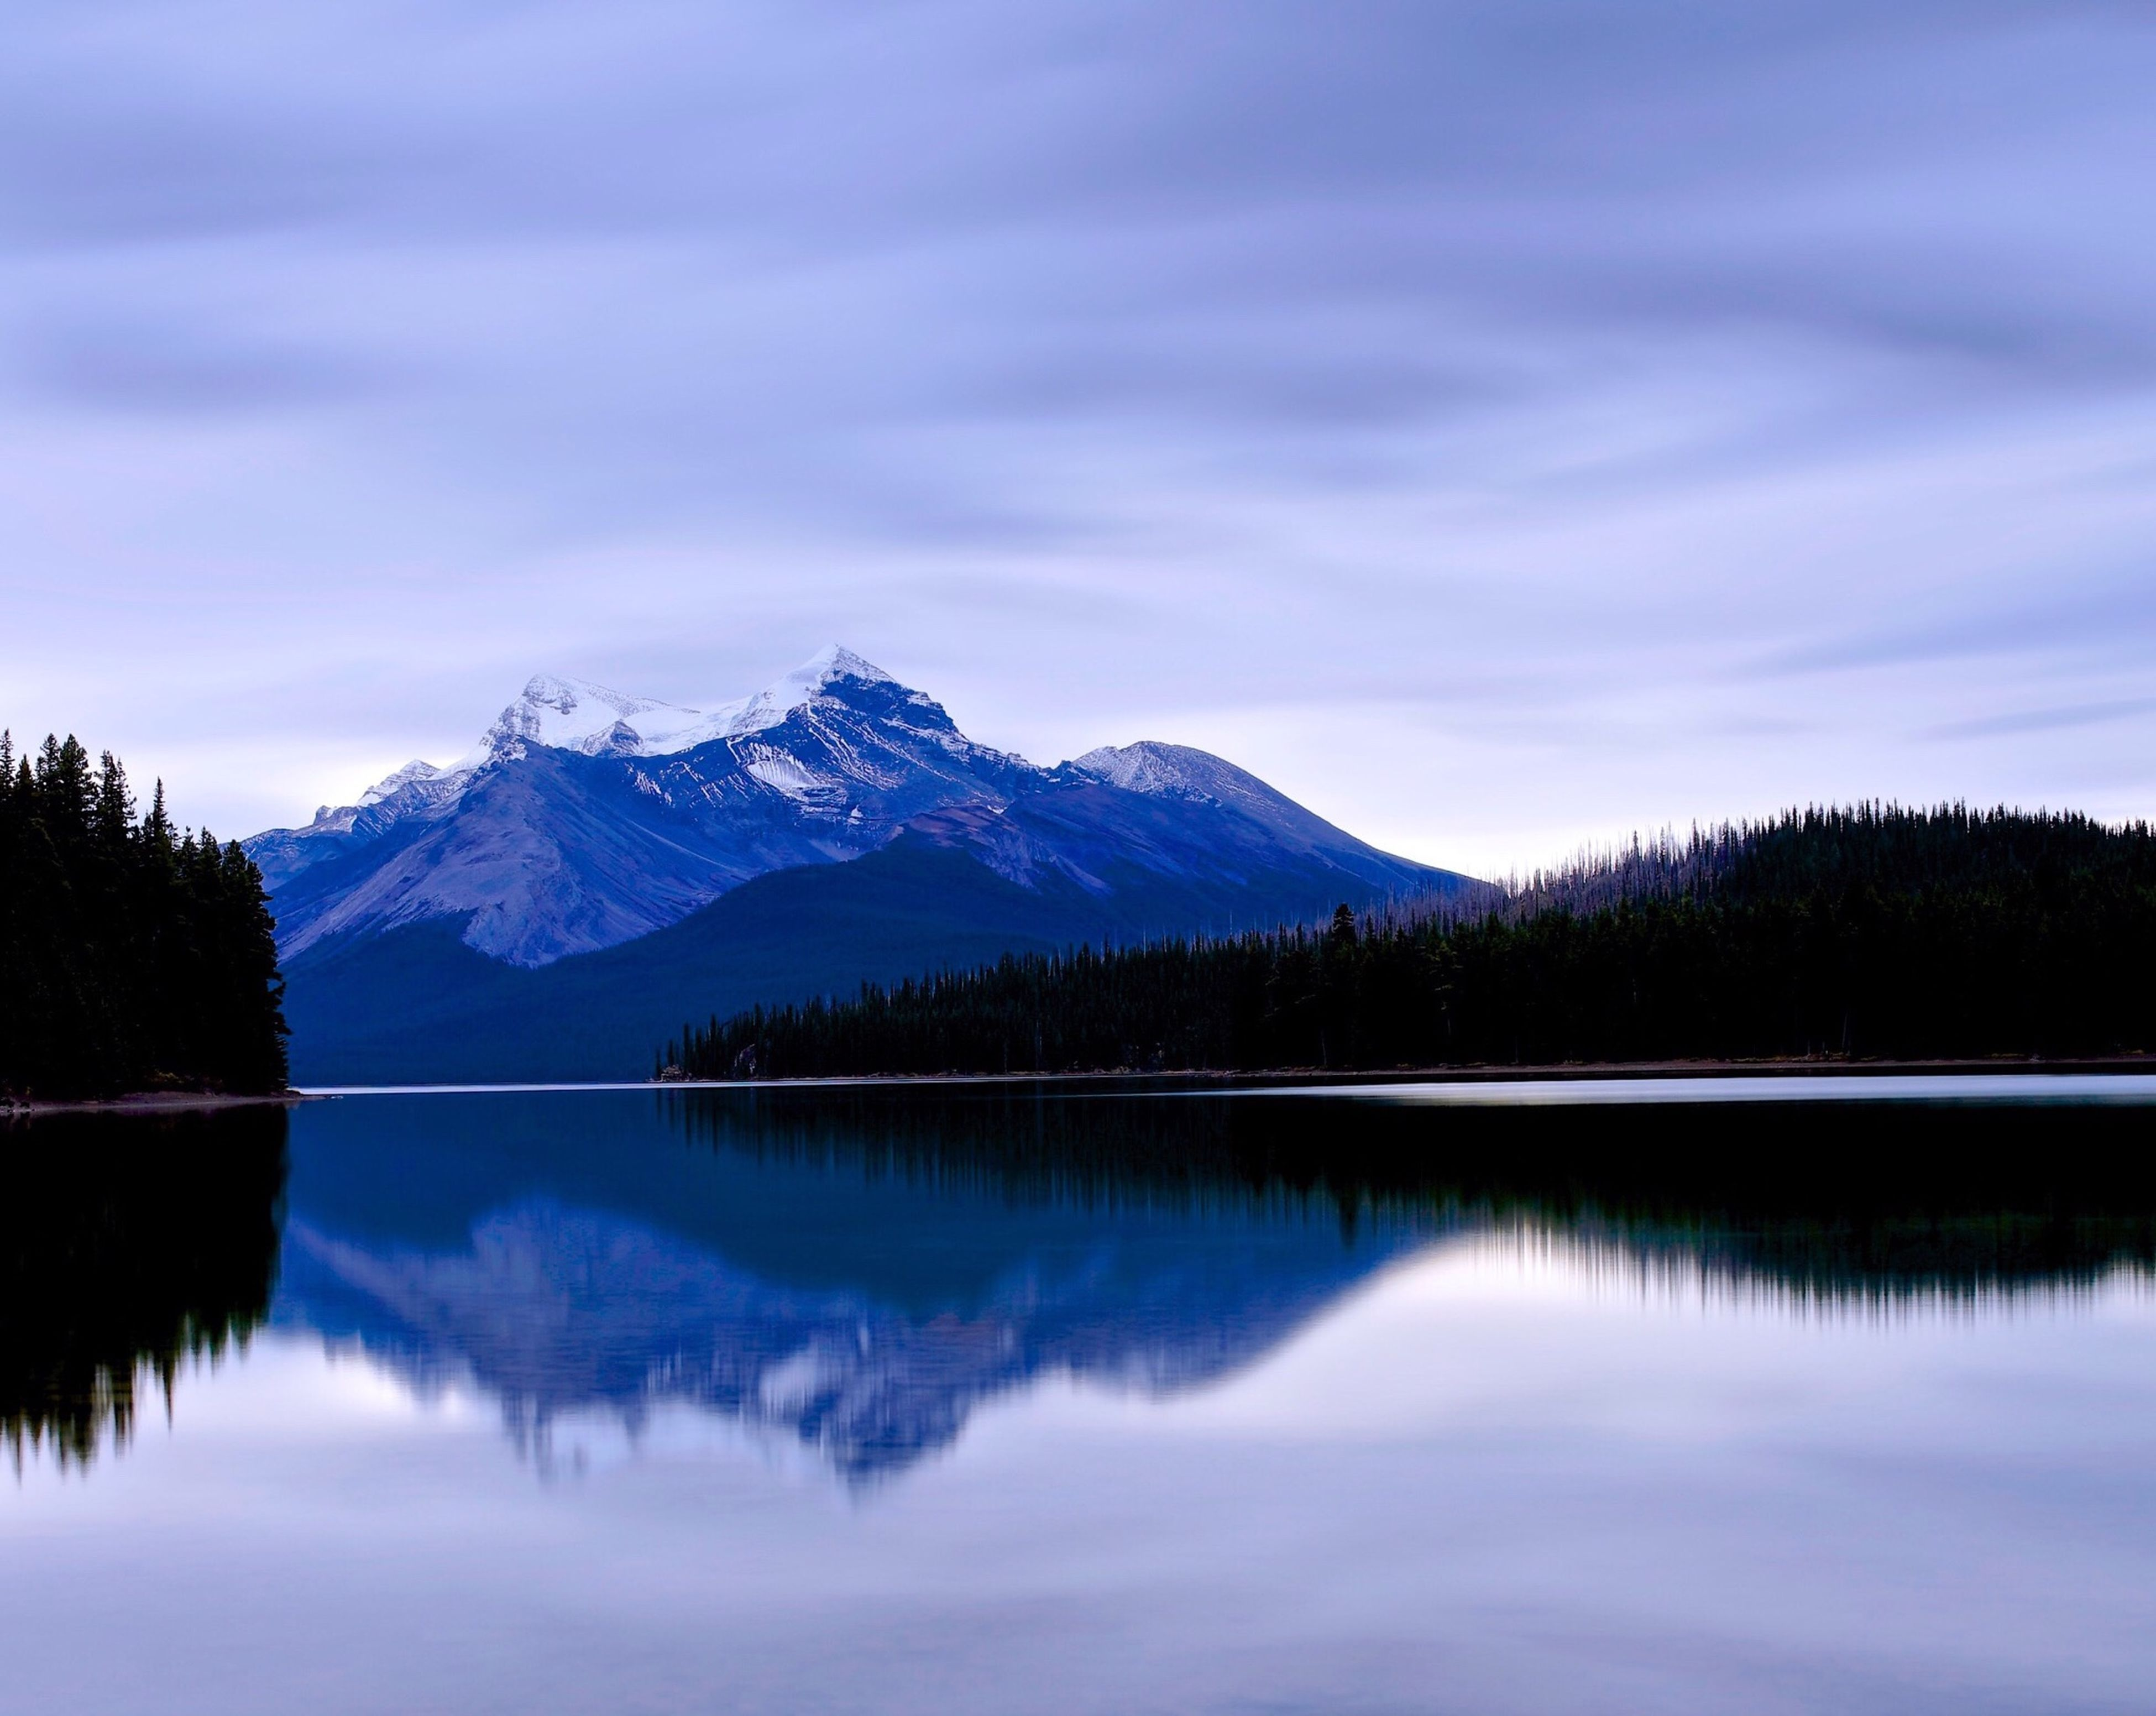 mountain, lake, tranquil scene, reflection, mountain range, tranquility, scenics, water, beauty in nature, waterfront, winter, snow, cold temperature, sky, snowcapped mountain, nature, cloud - sky, idyllic, tree, majestic